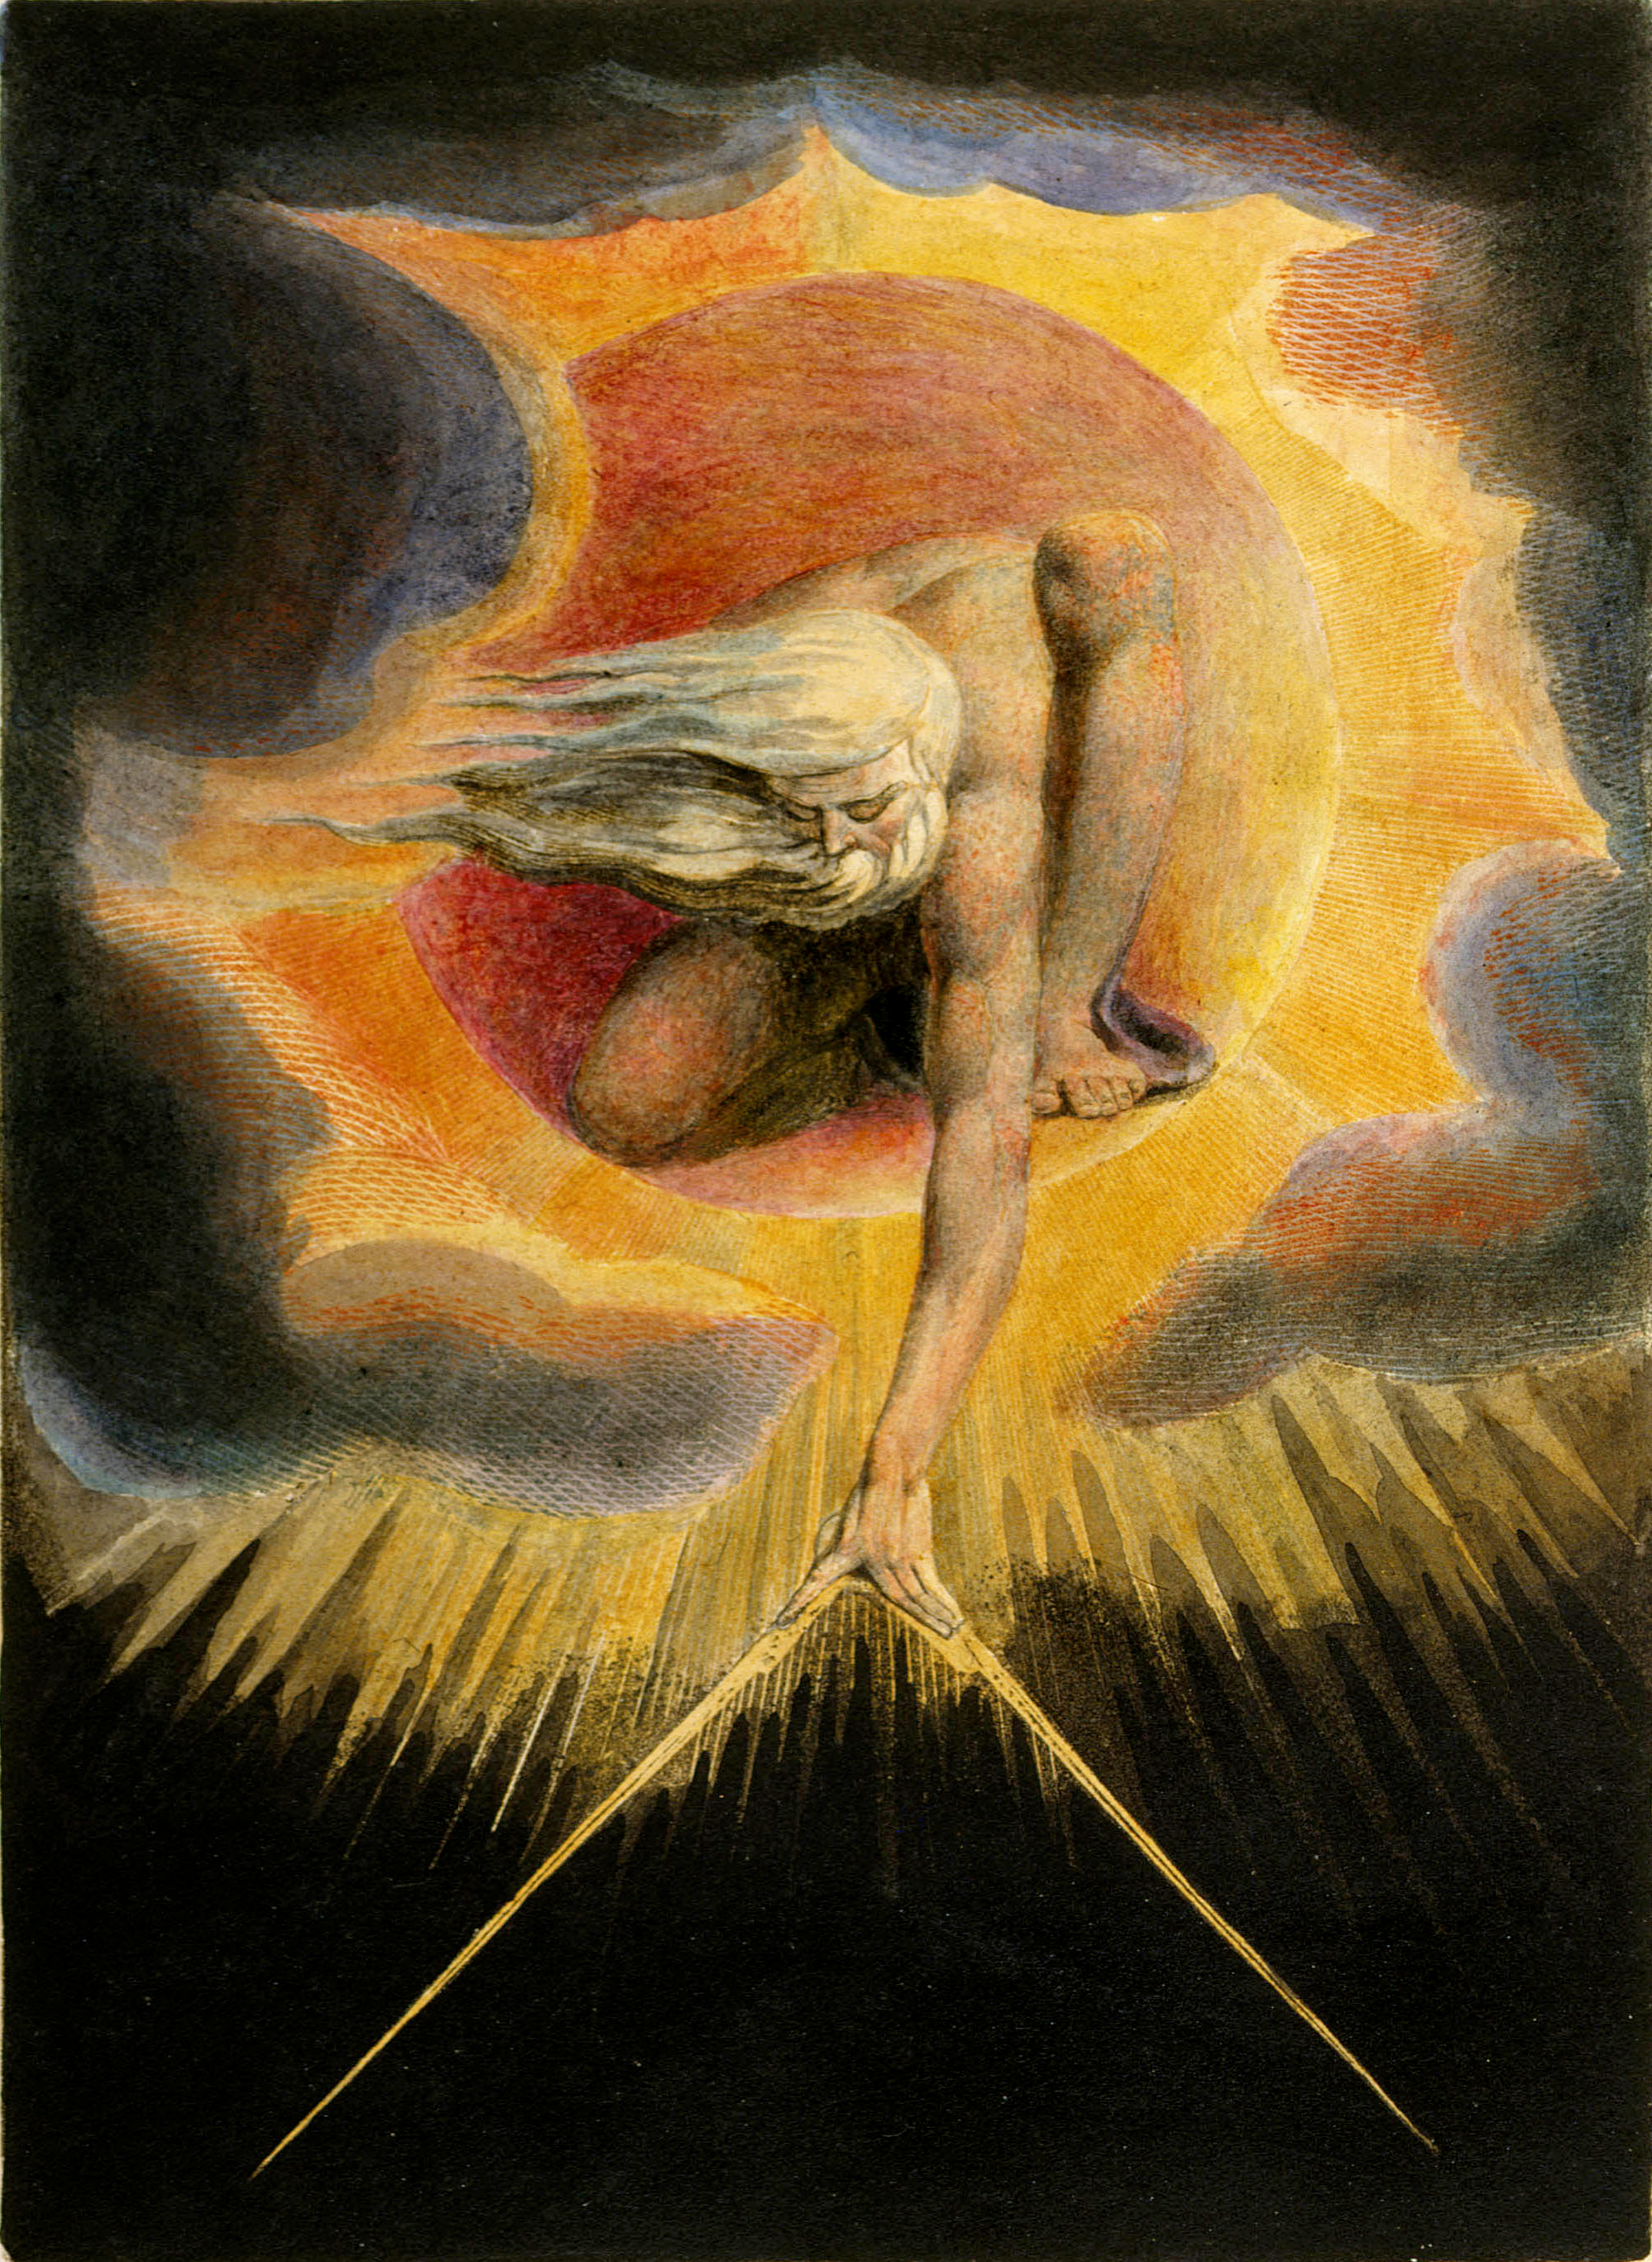 William Blake (1757-1827)